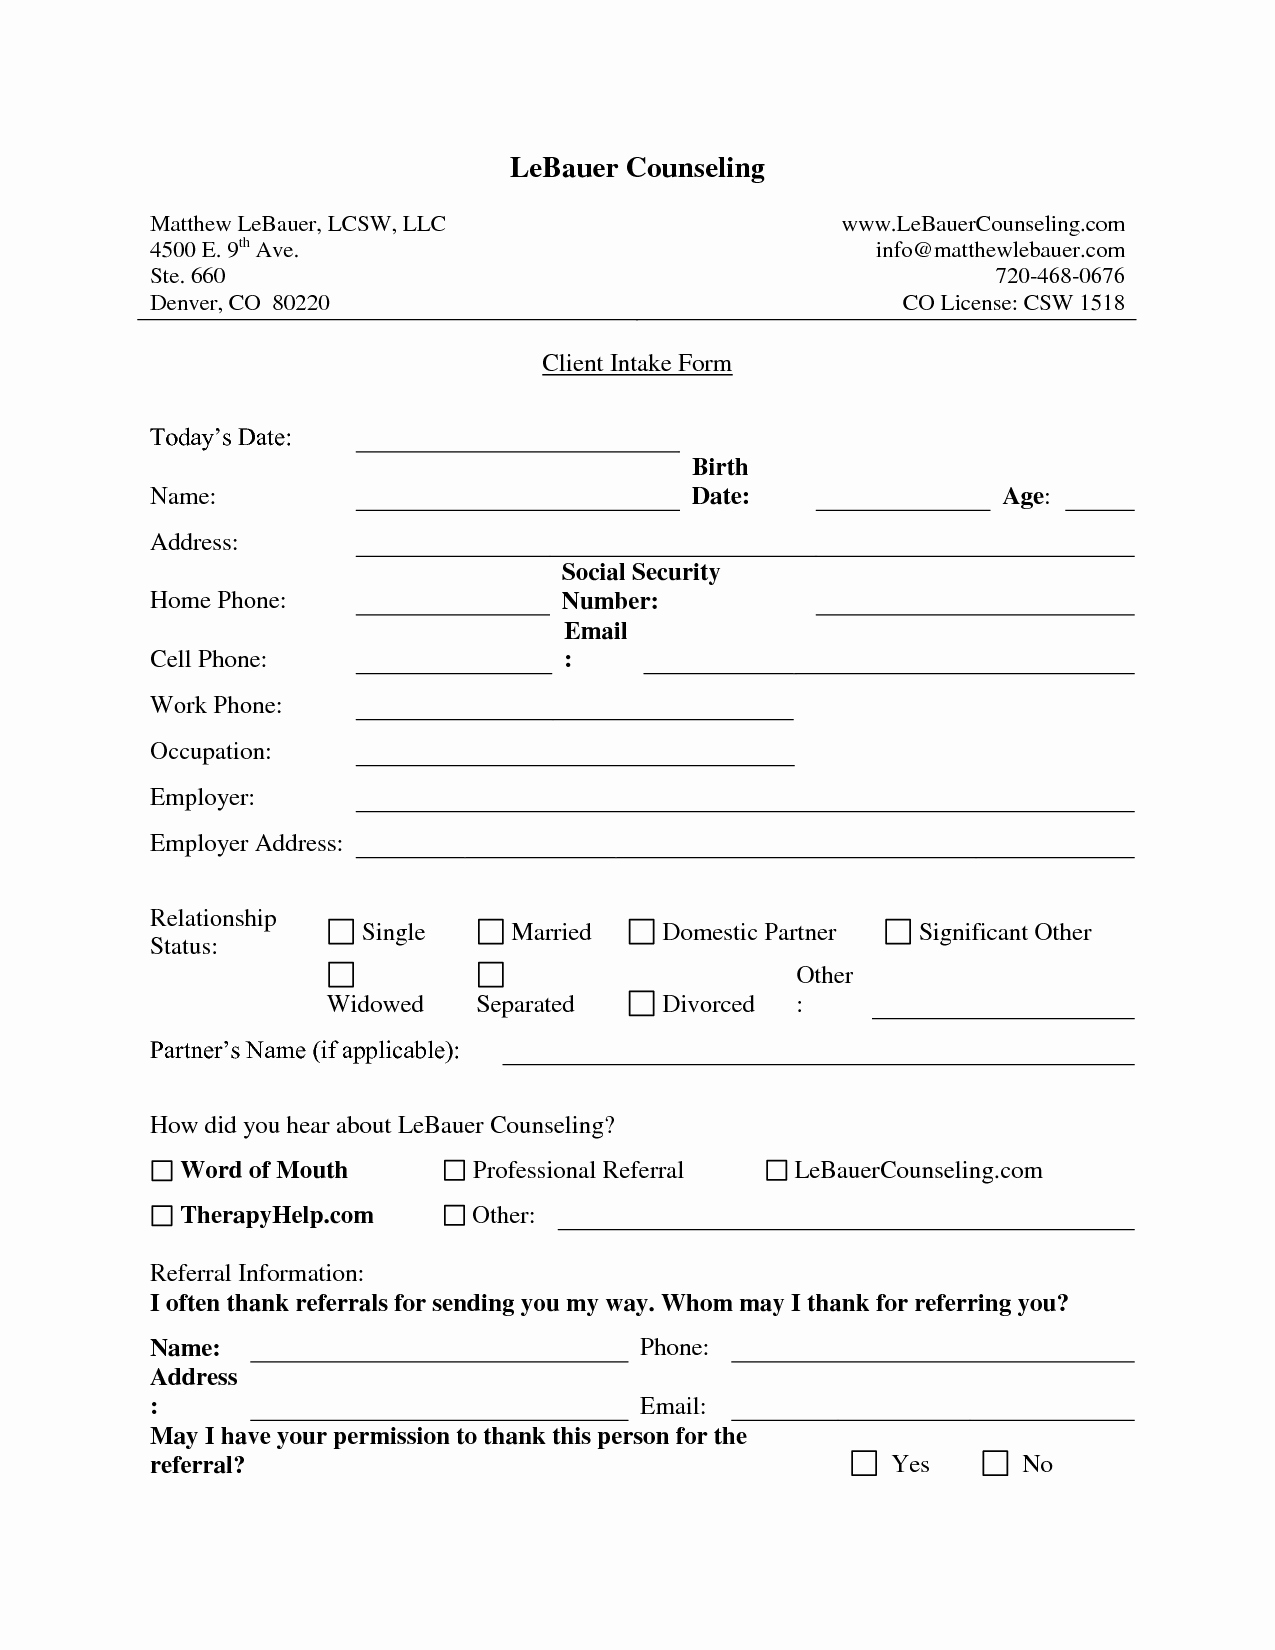 New Client form Template Best Of New Client Intake form Template Fogiid Clipart Kid